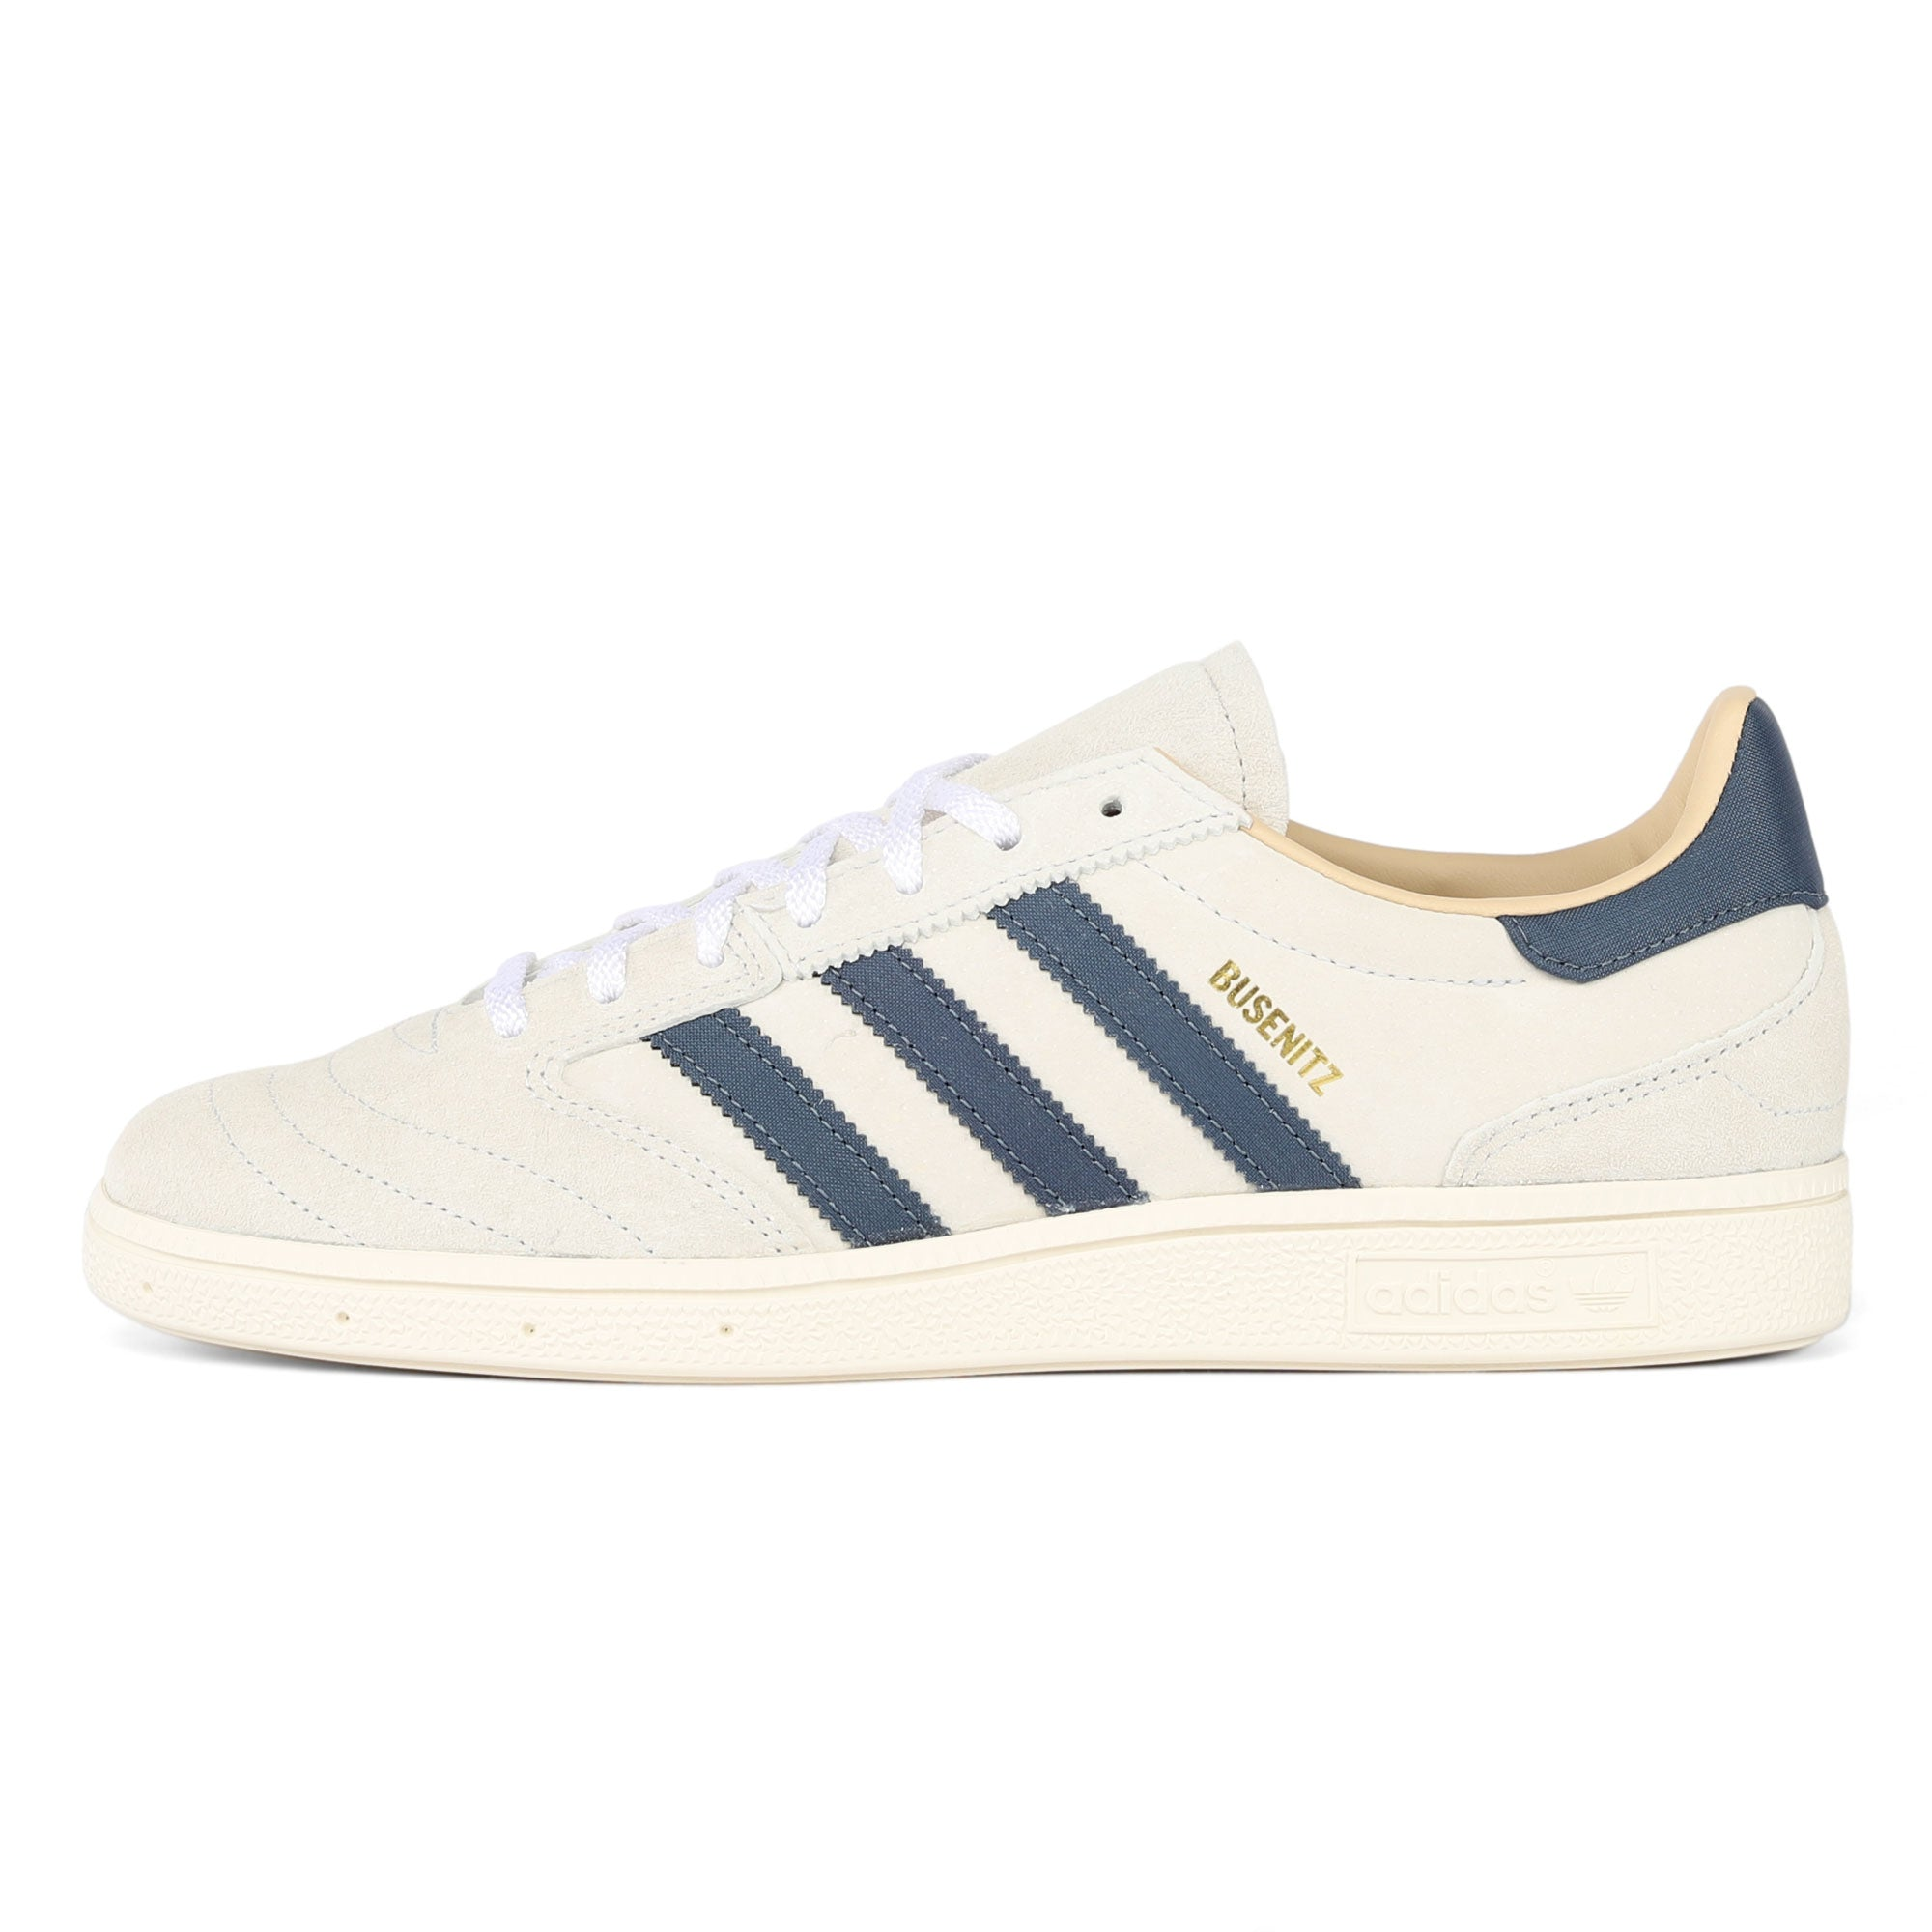 Adidas Busenitz Vintage Product Photo #1